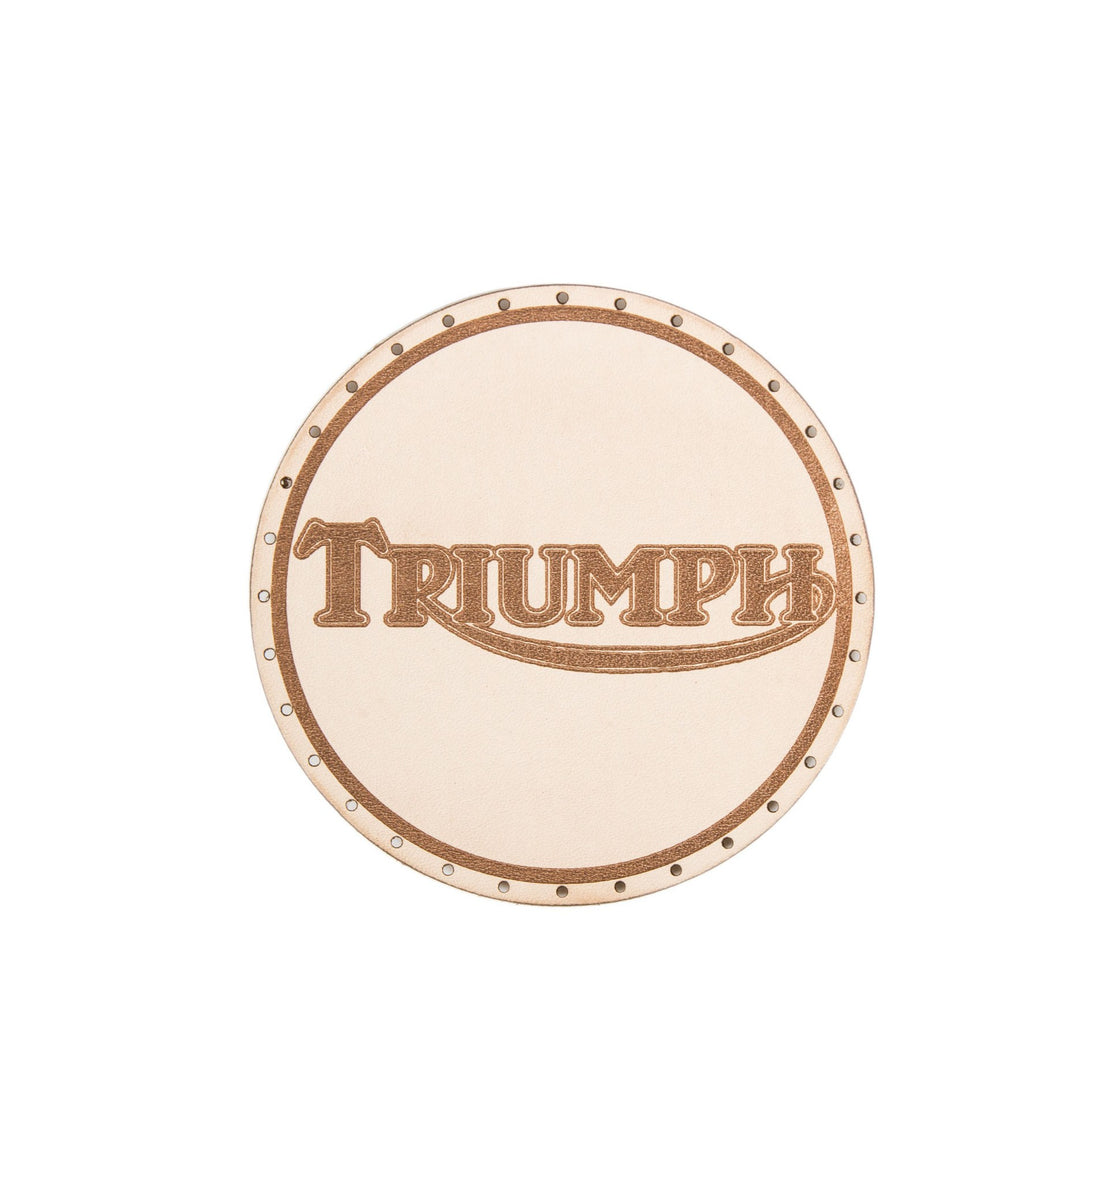 Triumph Motors Patch - Accessories: Patches - Iron and Resin